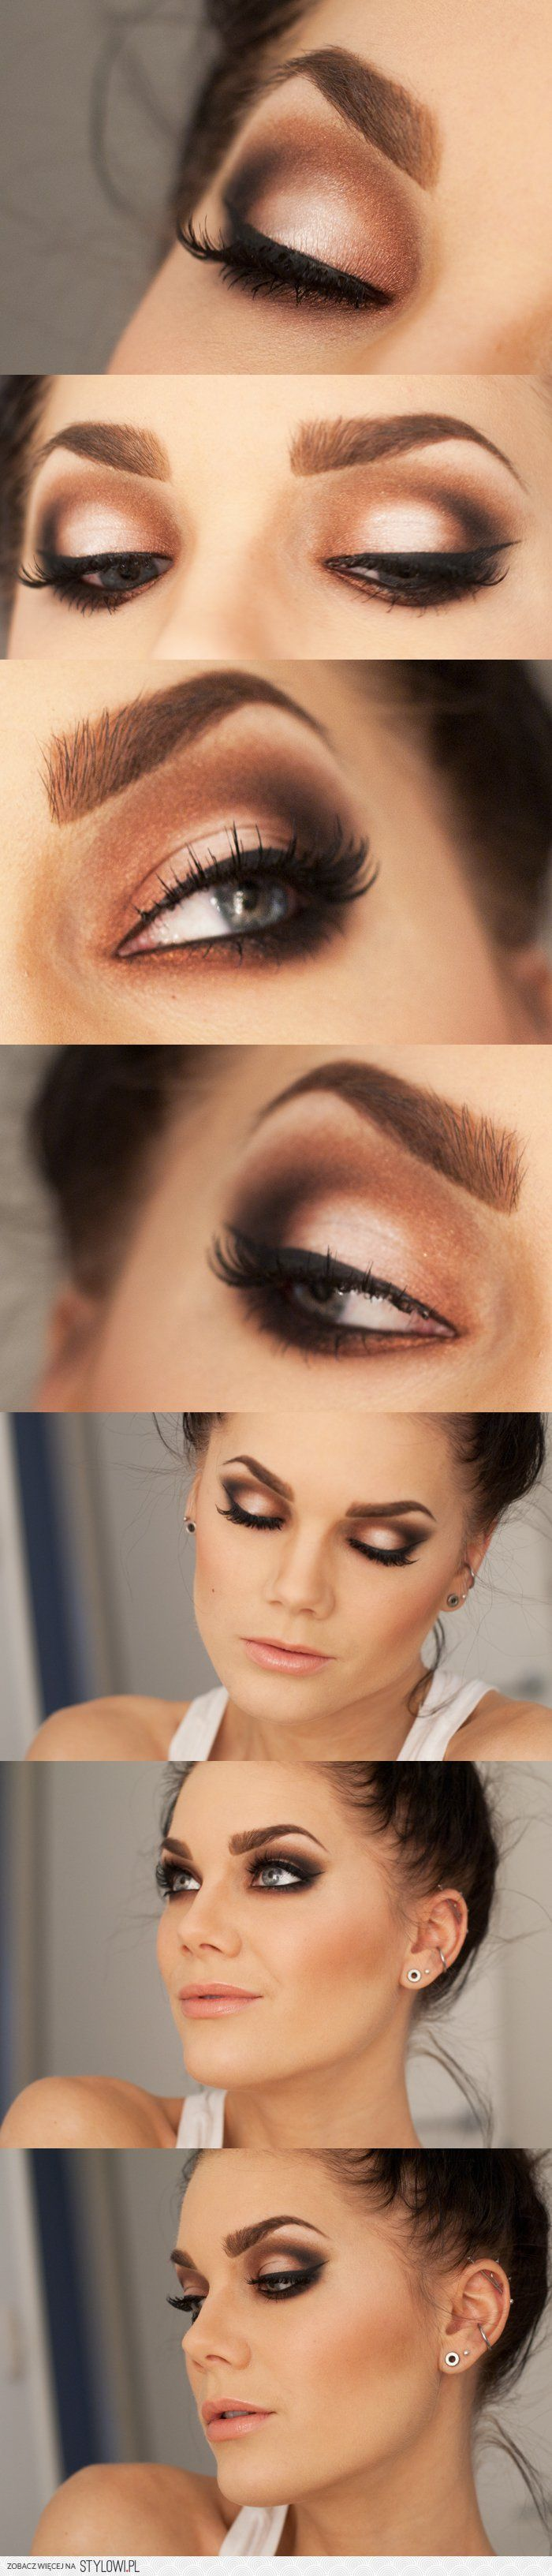 I love the makeup! And she makes me really want an industrial piercing!